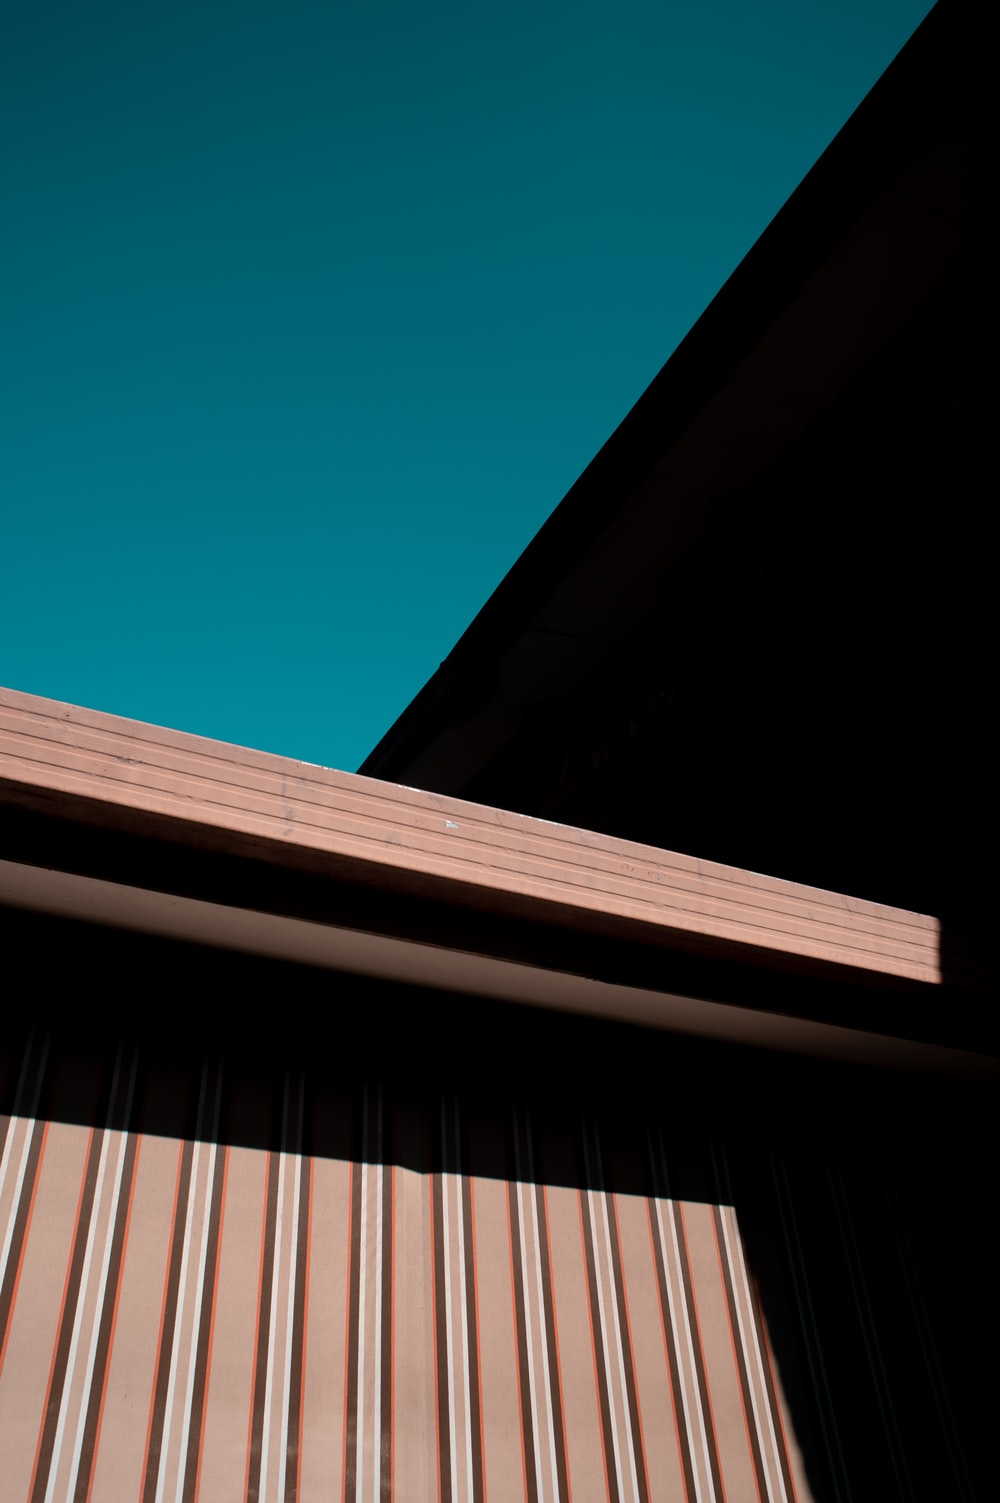 brown wooden roof under blue sky during daytime